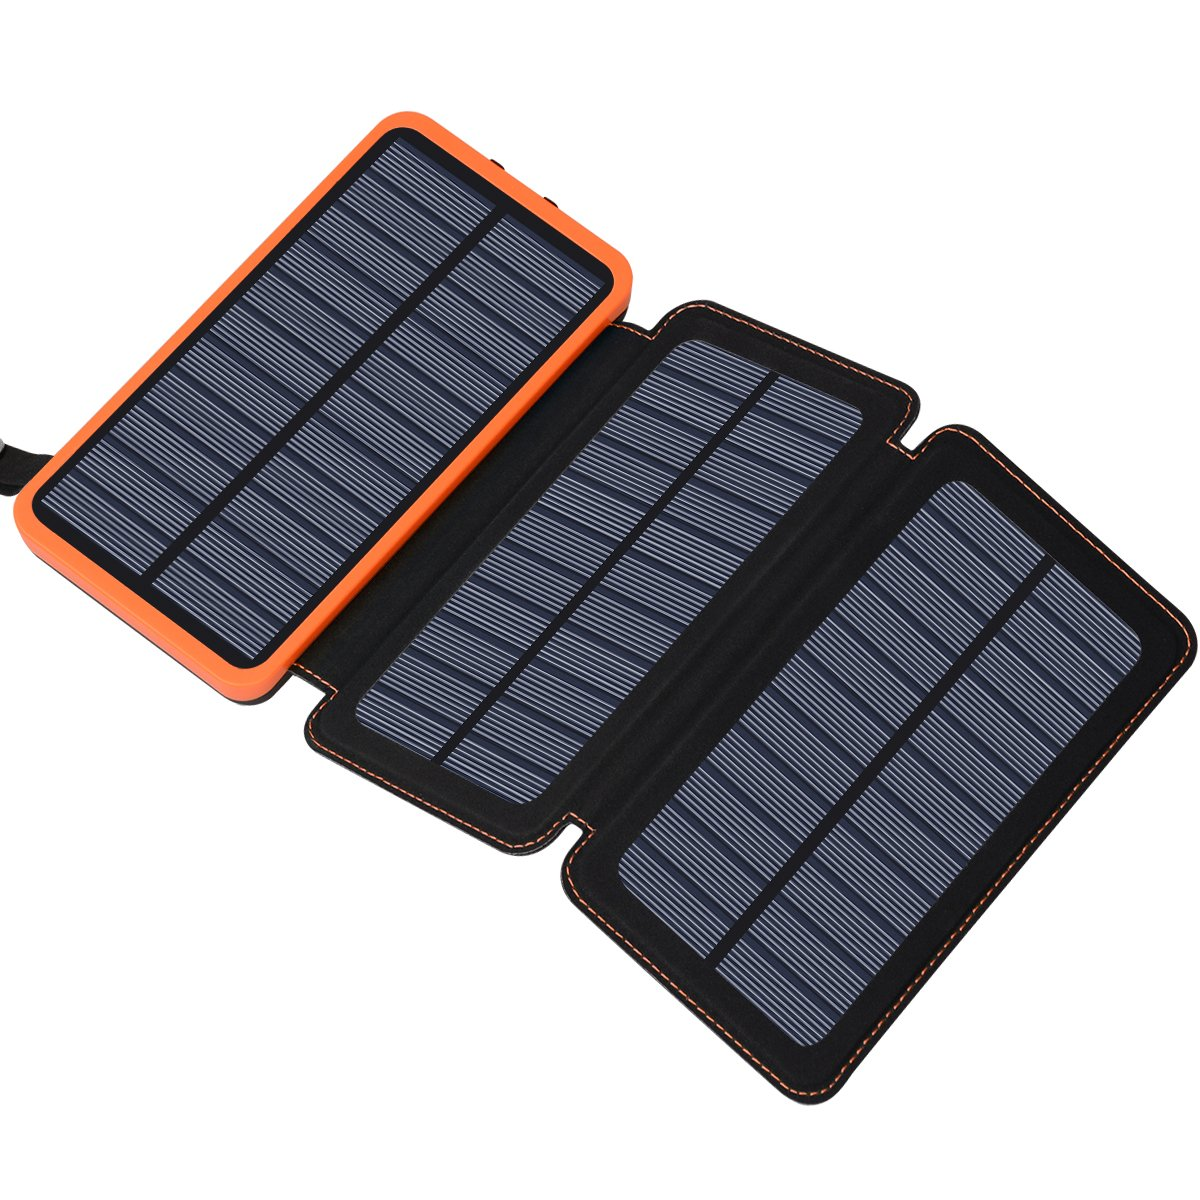 Solar Charger 24000mAh, FEELLE Solar Power Bank with 2 USB Ports Waterproof Portable External Battery Compatible with Smartphones, Tablets and More by Feelle